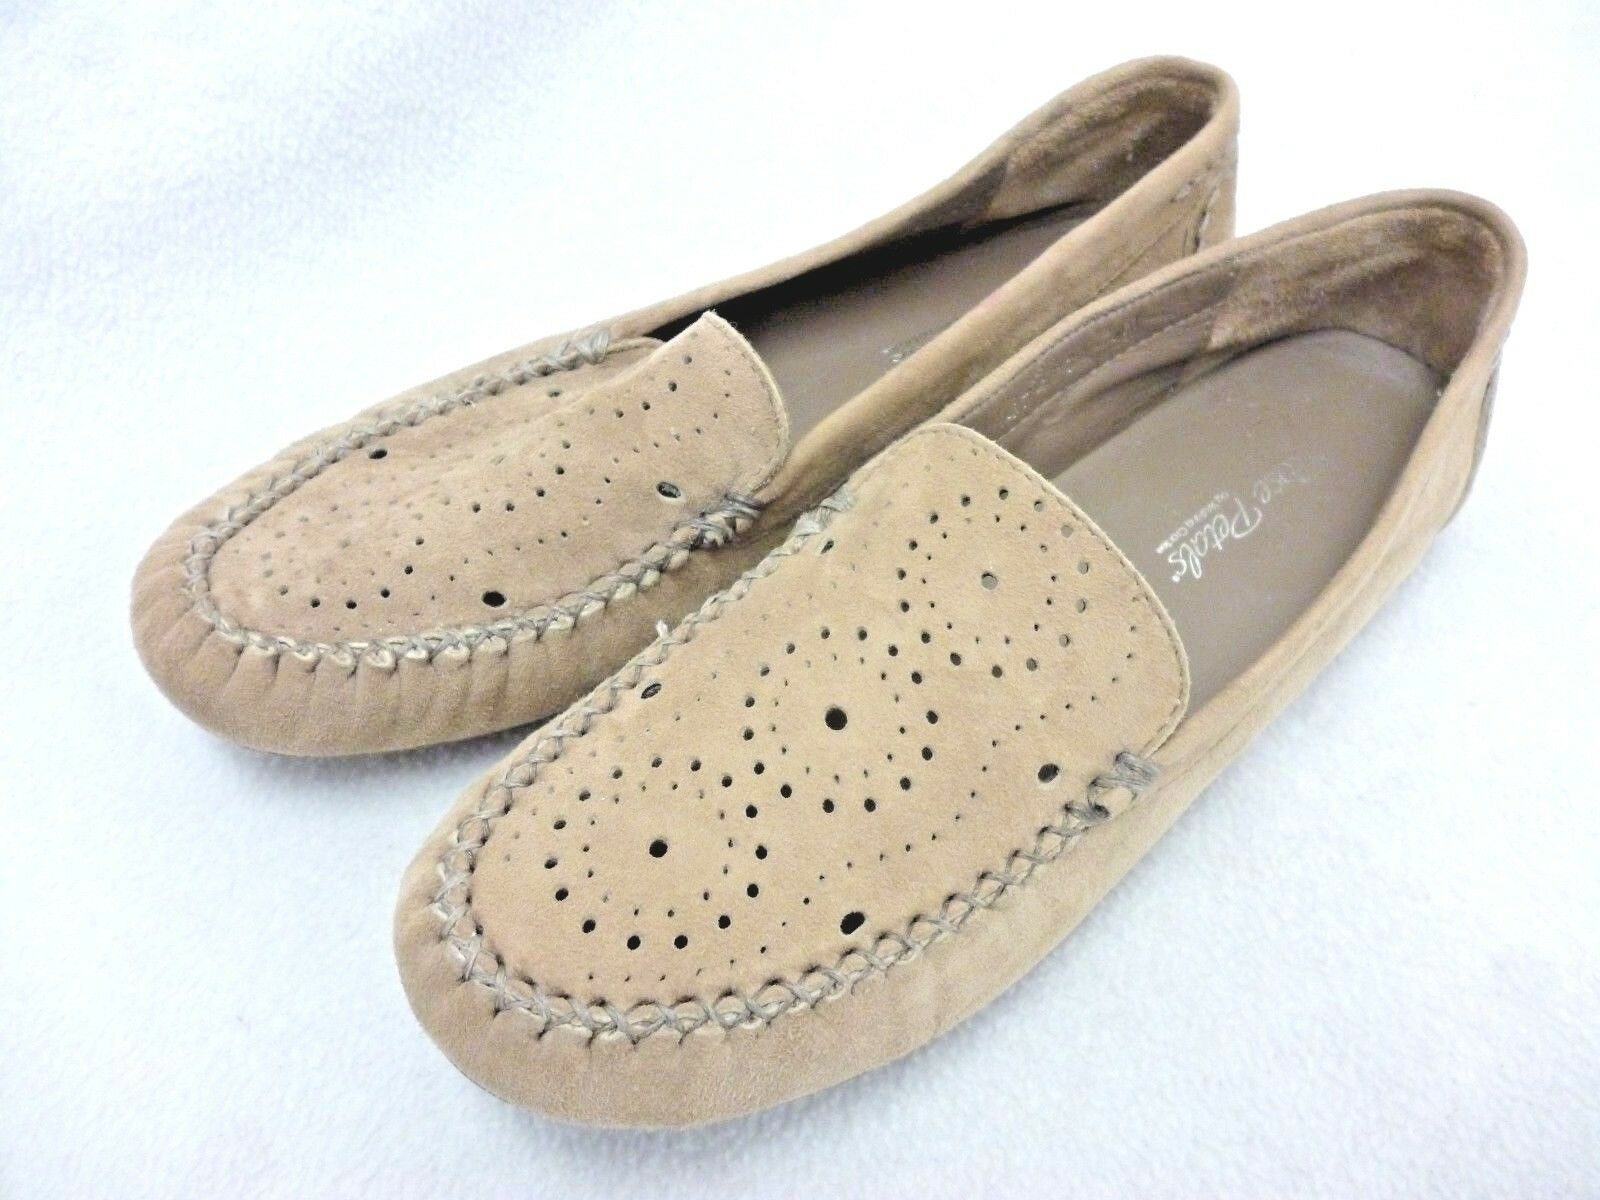 WALKING CRADLE ROSE PETALS WOMEN'S SHOES SIZE 7M BEIGE SUEDE LOAFER FLATS